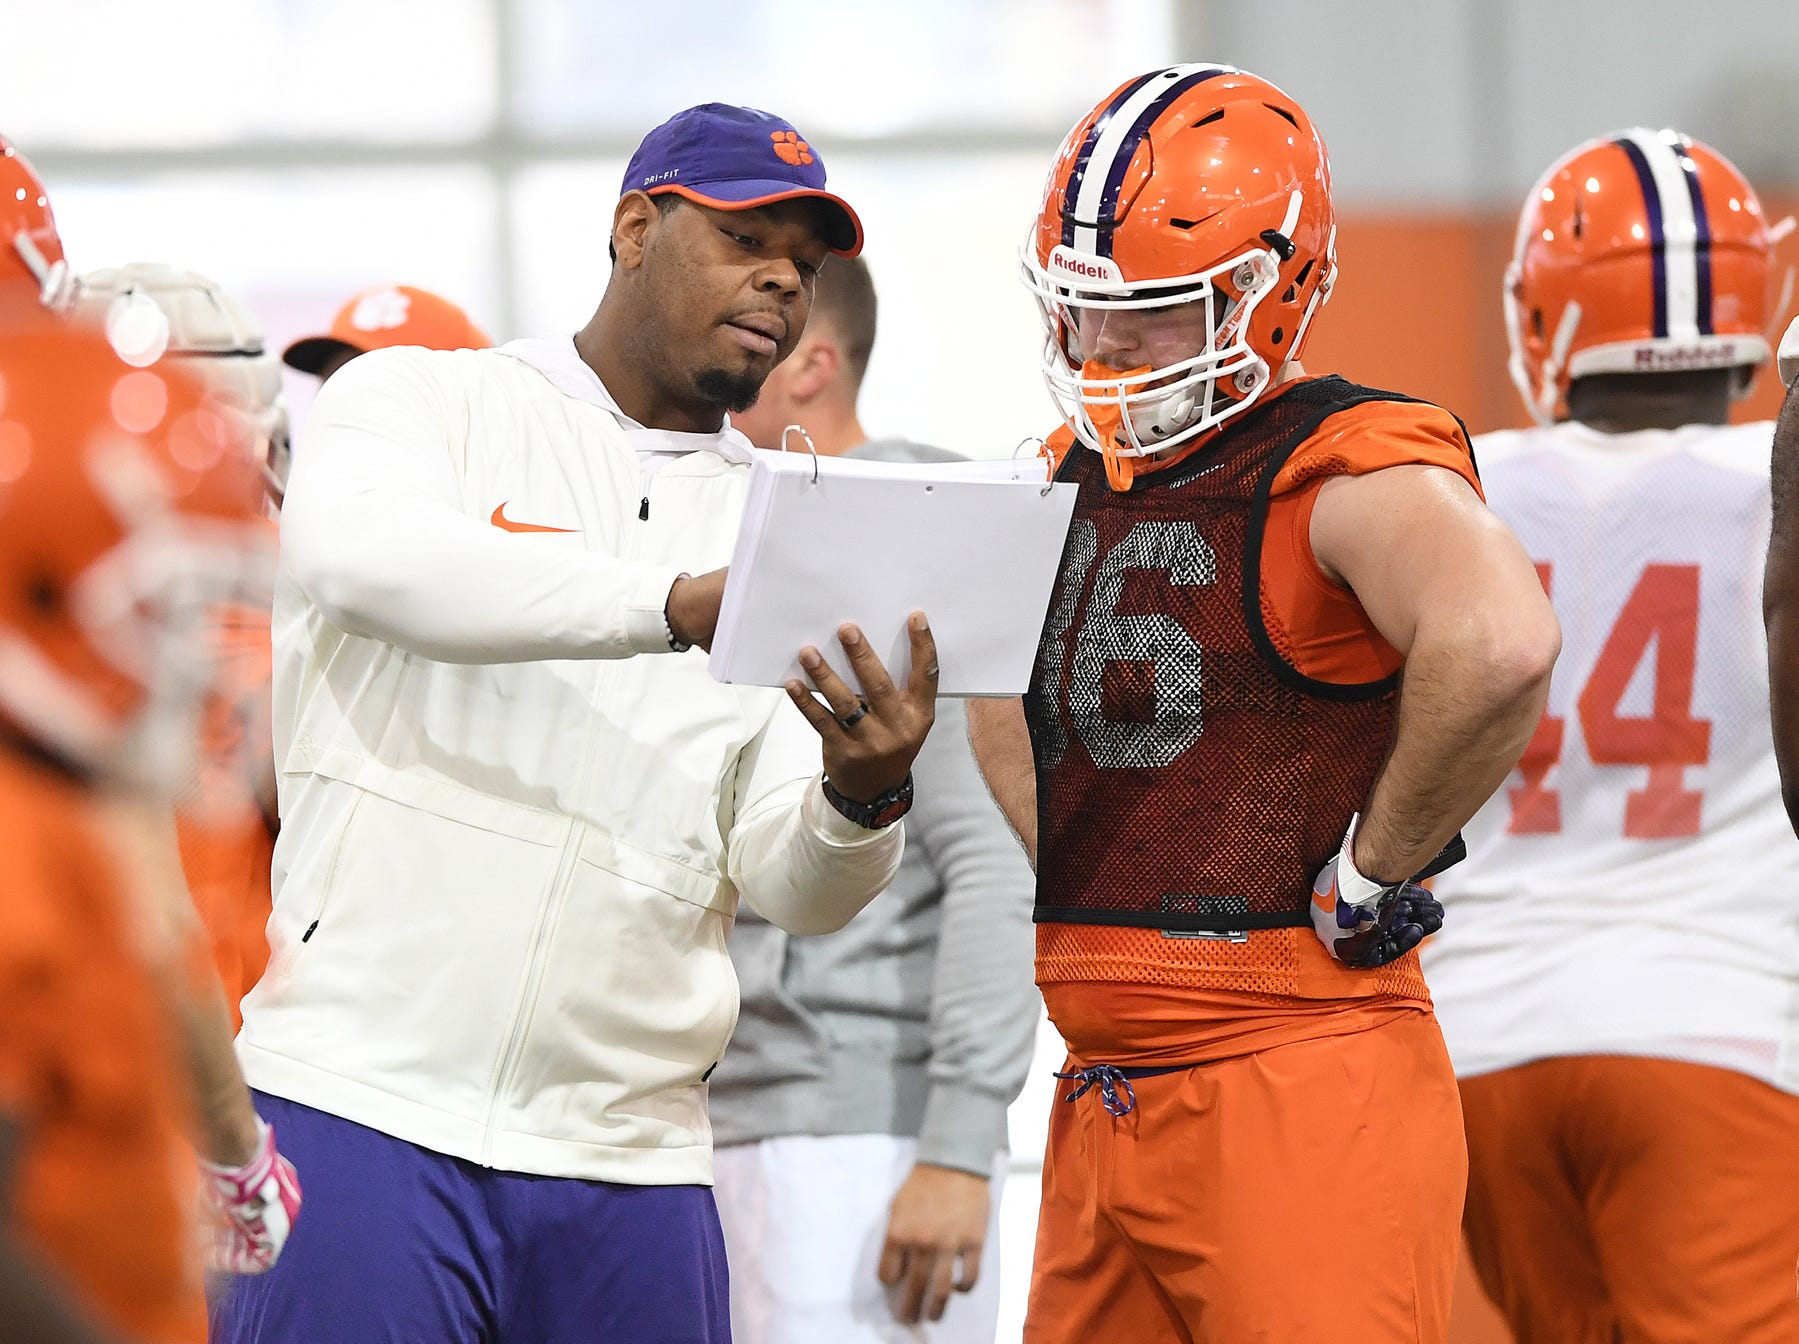 Clemson Cotton Bowl practice on Wednesday, December 12, 2018.